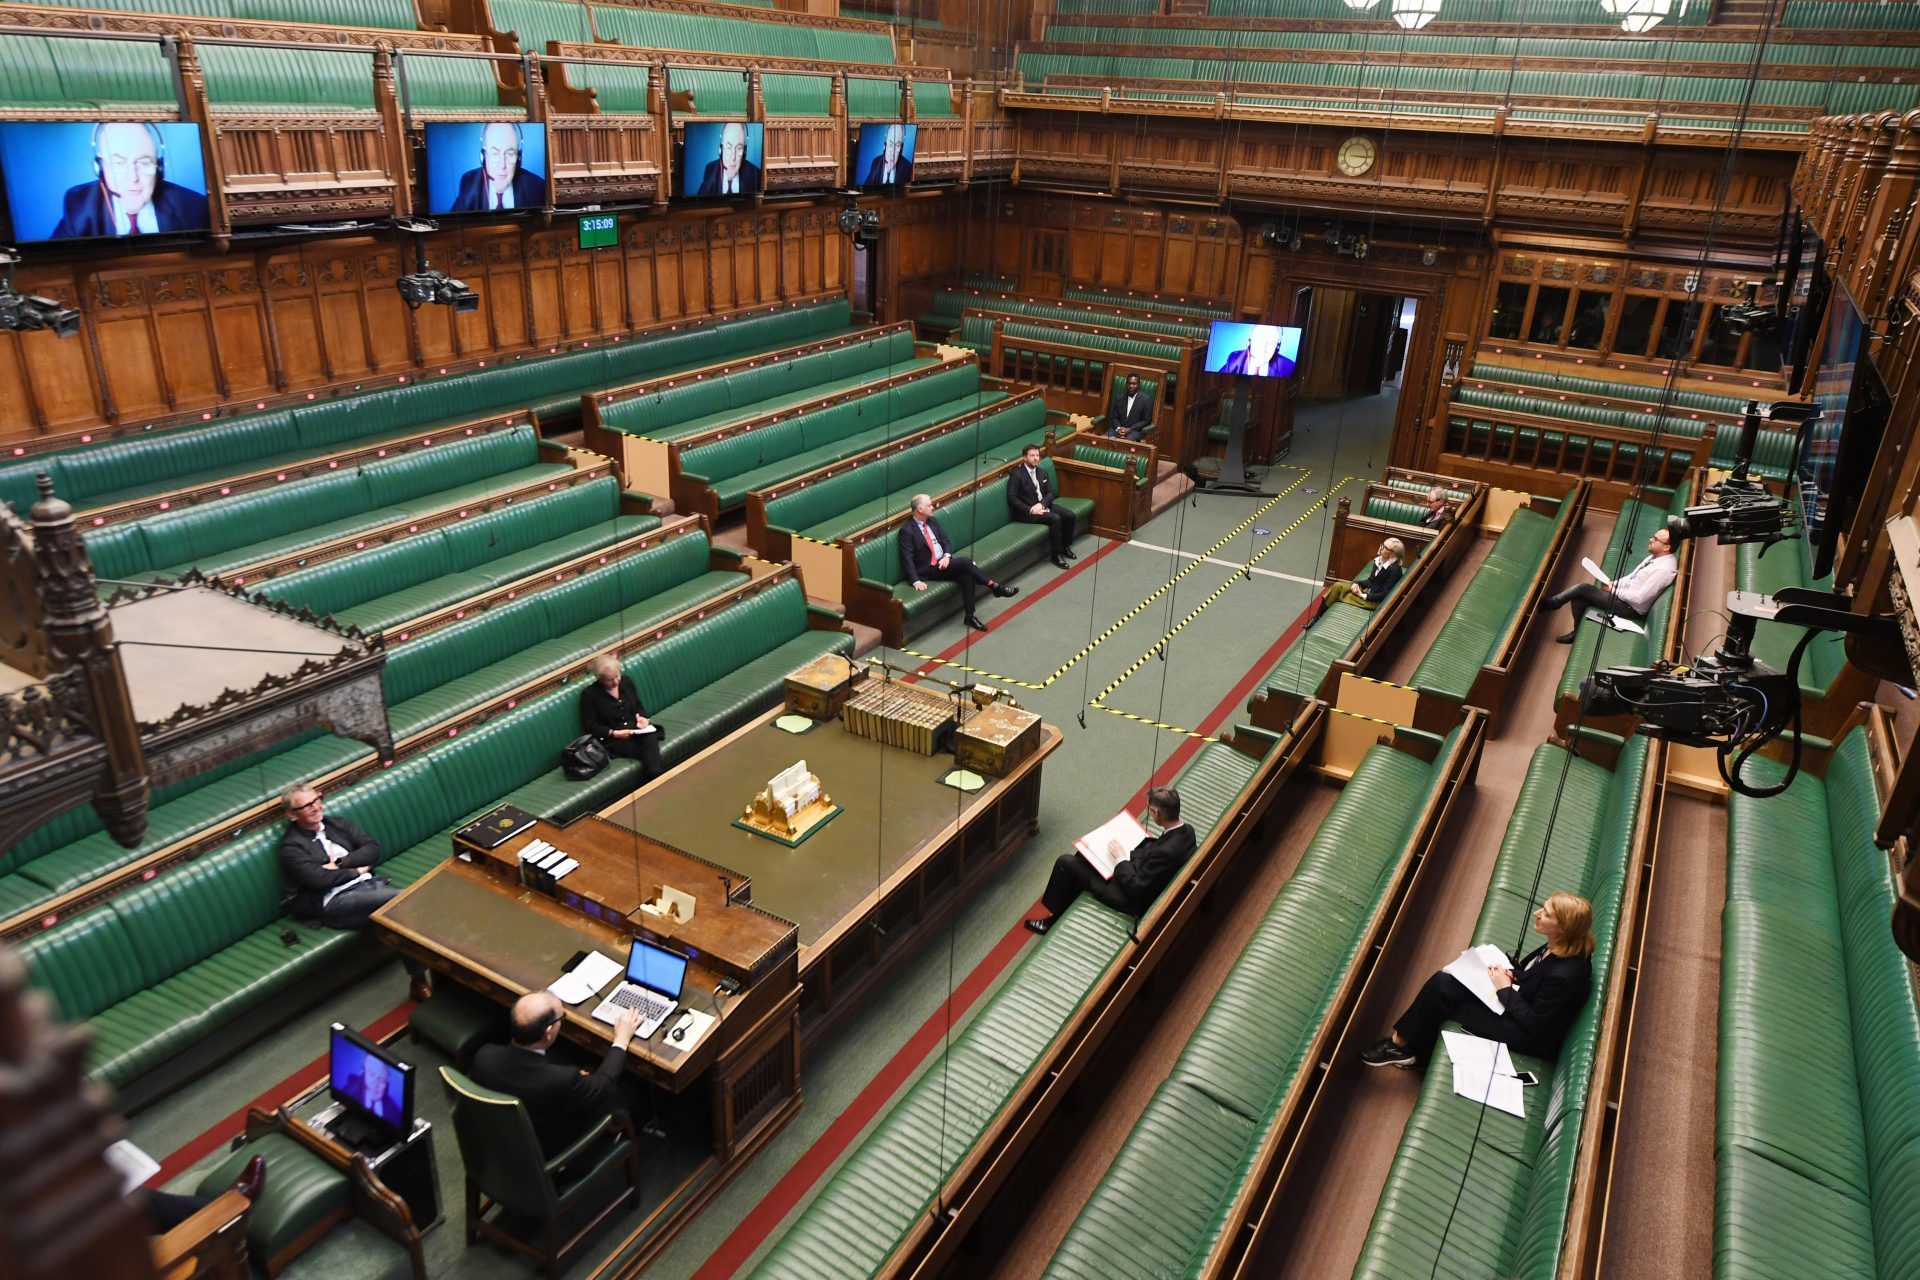 House of Commons hybrid-virtual proceedings rehearsal ahead of return of the House 20/04/2020